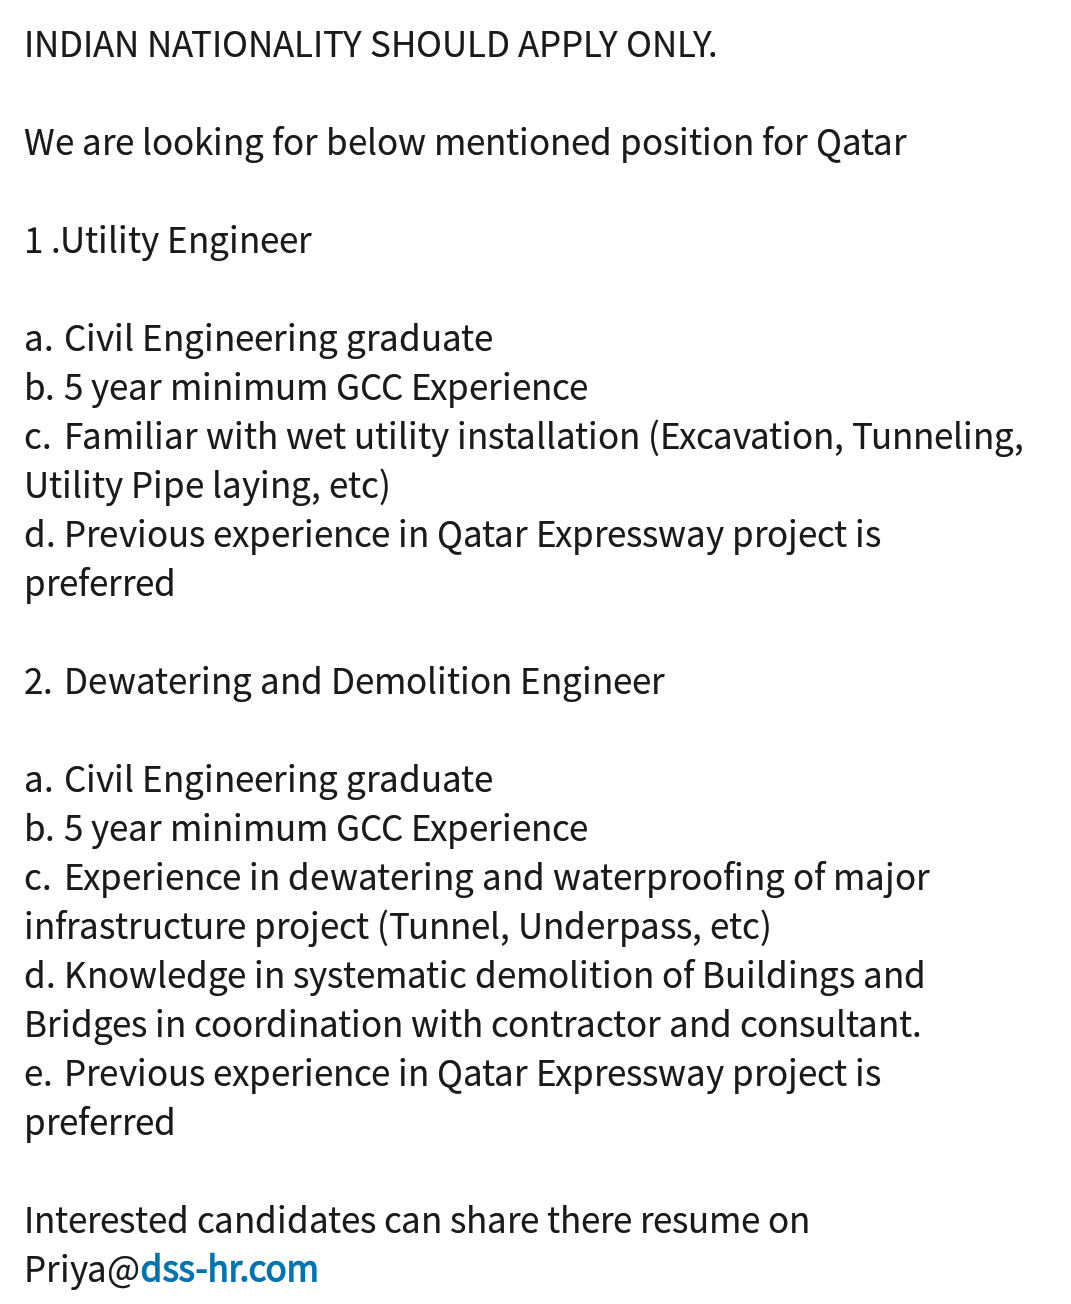 Oil And Gas Jobs Utility Engineer Dewateeing And Demolition Engineer